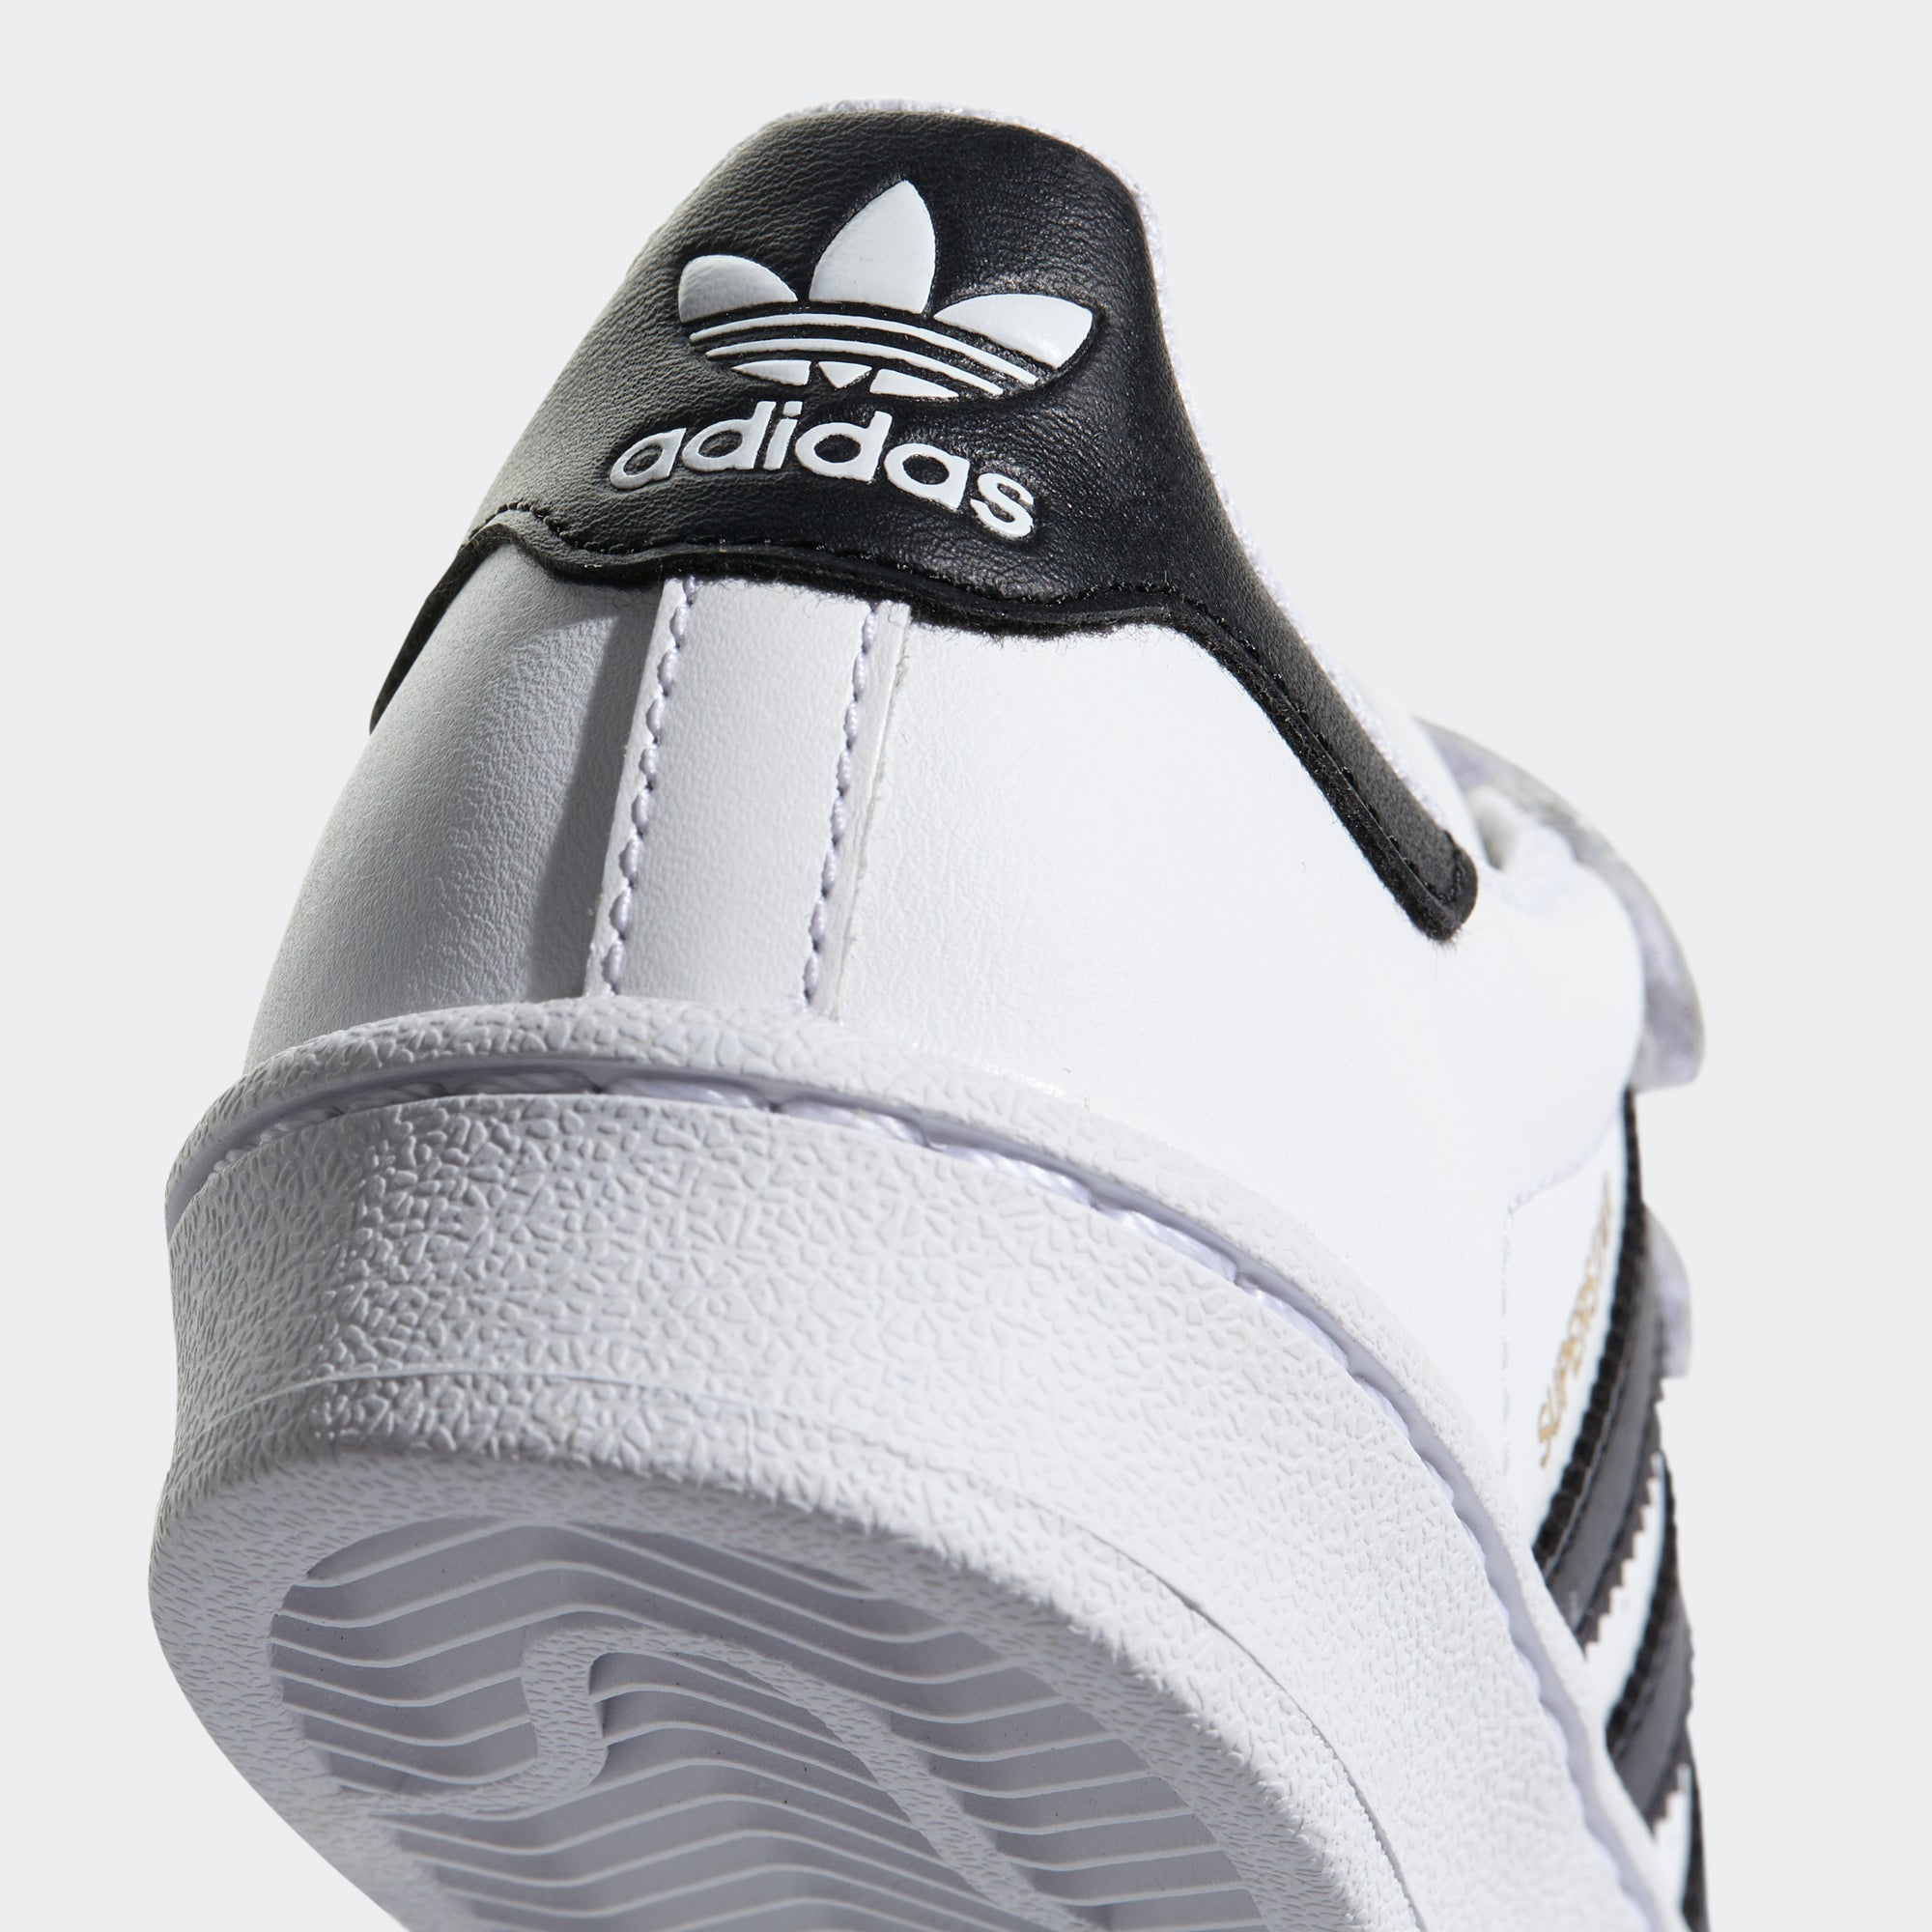 detailed look 0e4a2 9b516 adidas Superstar Foundation Shoes White B26070 | Chicago ...